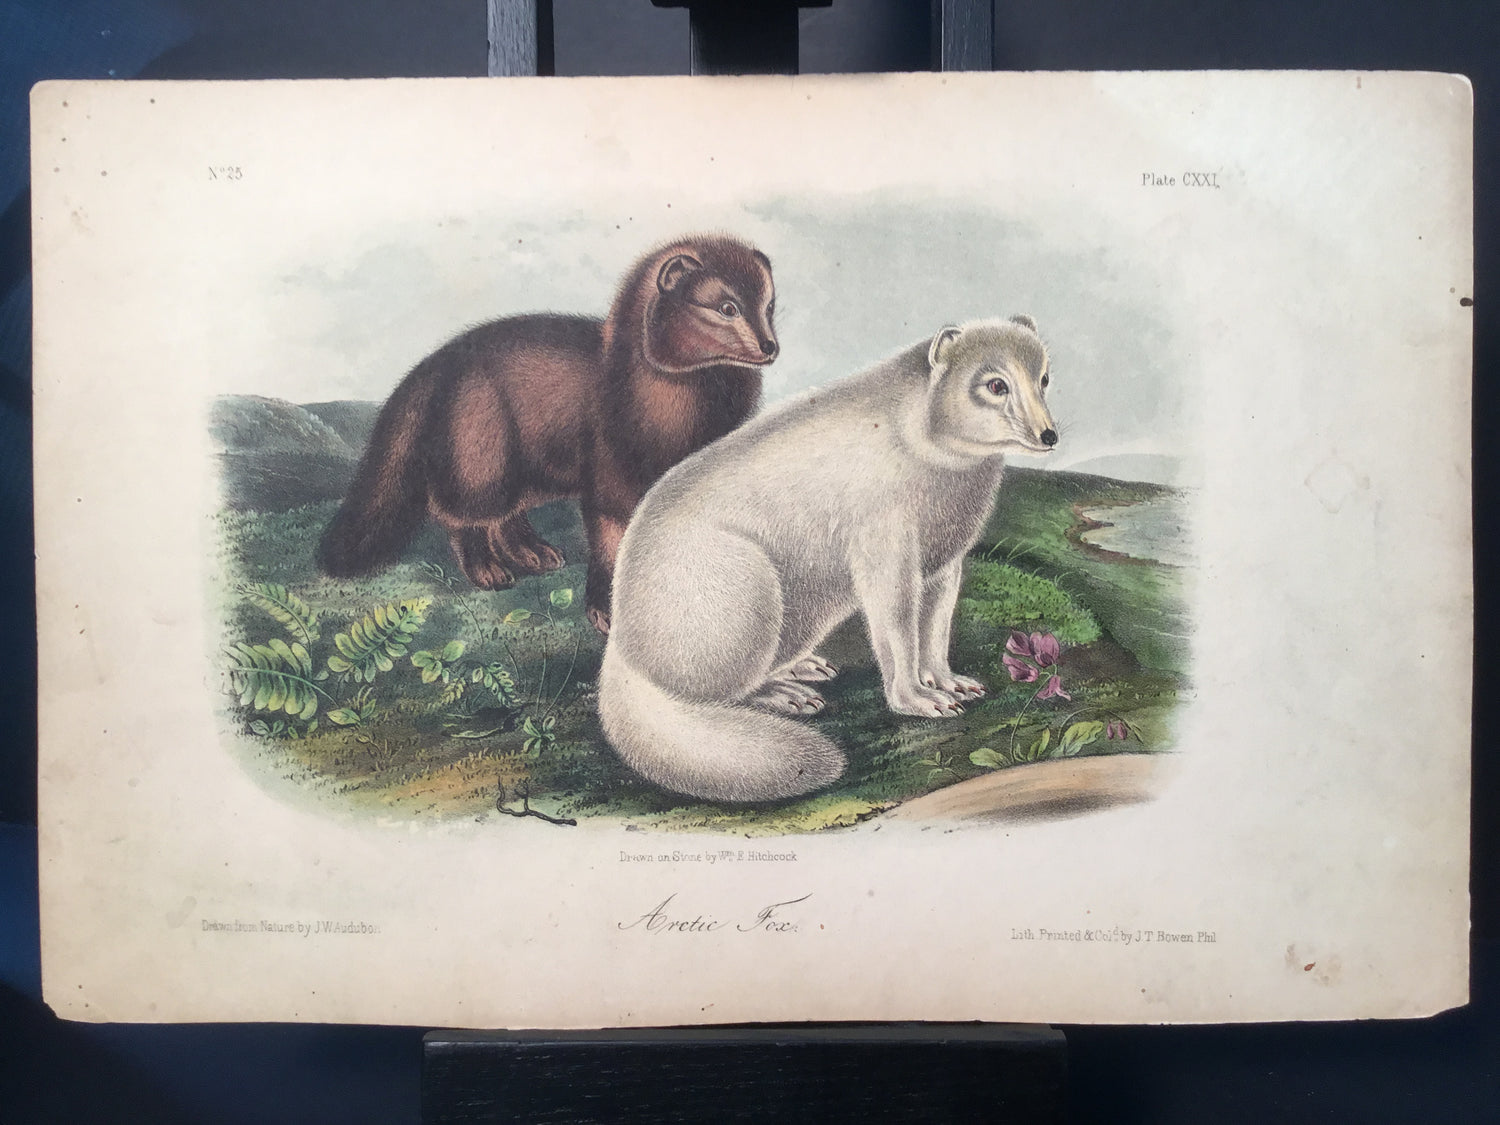 Lord-Hopkins Collection - Artic Fox